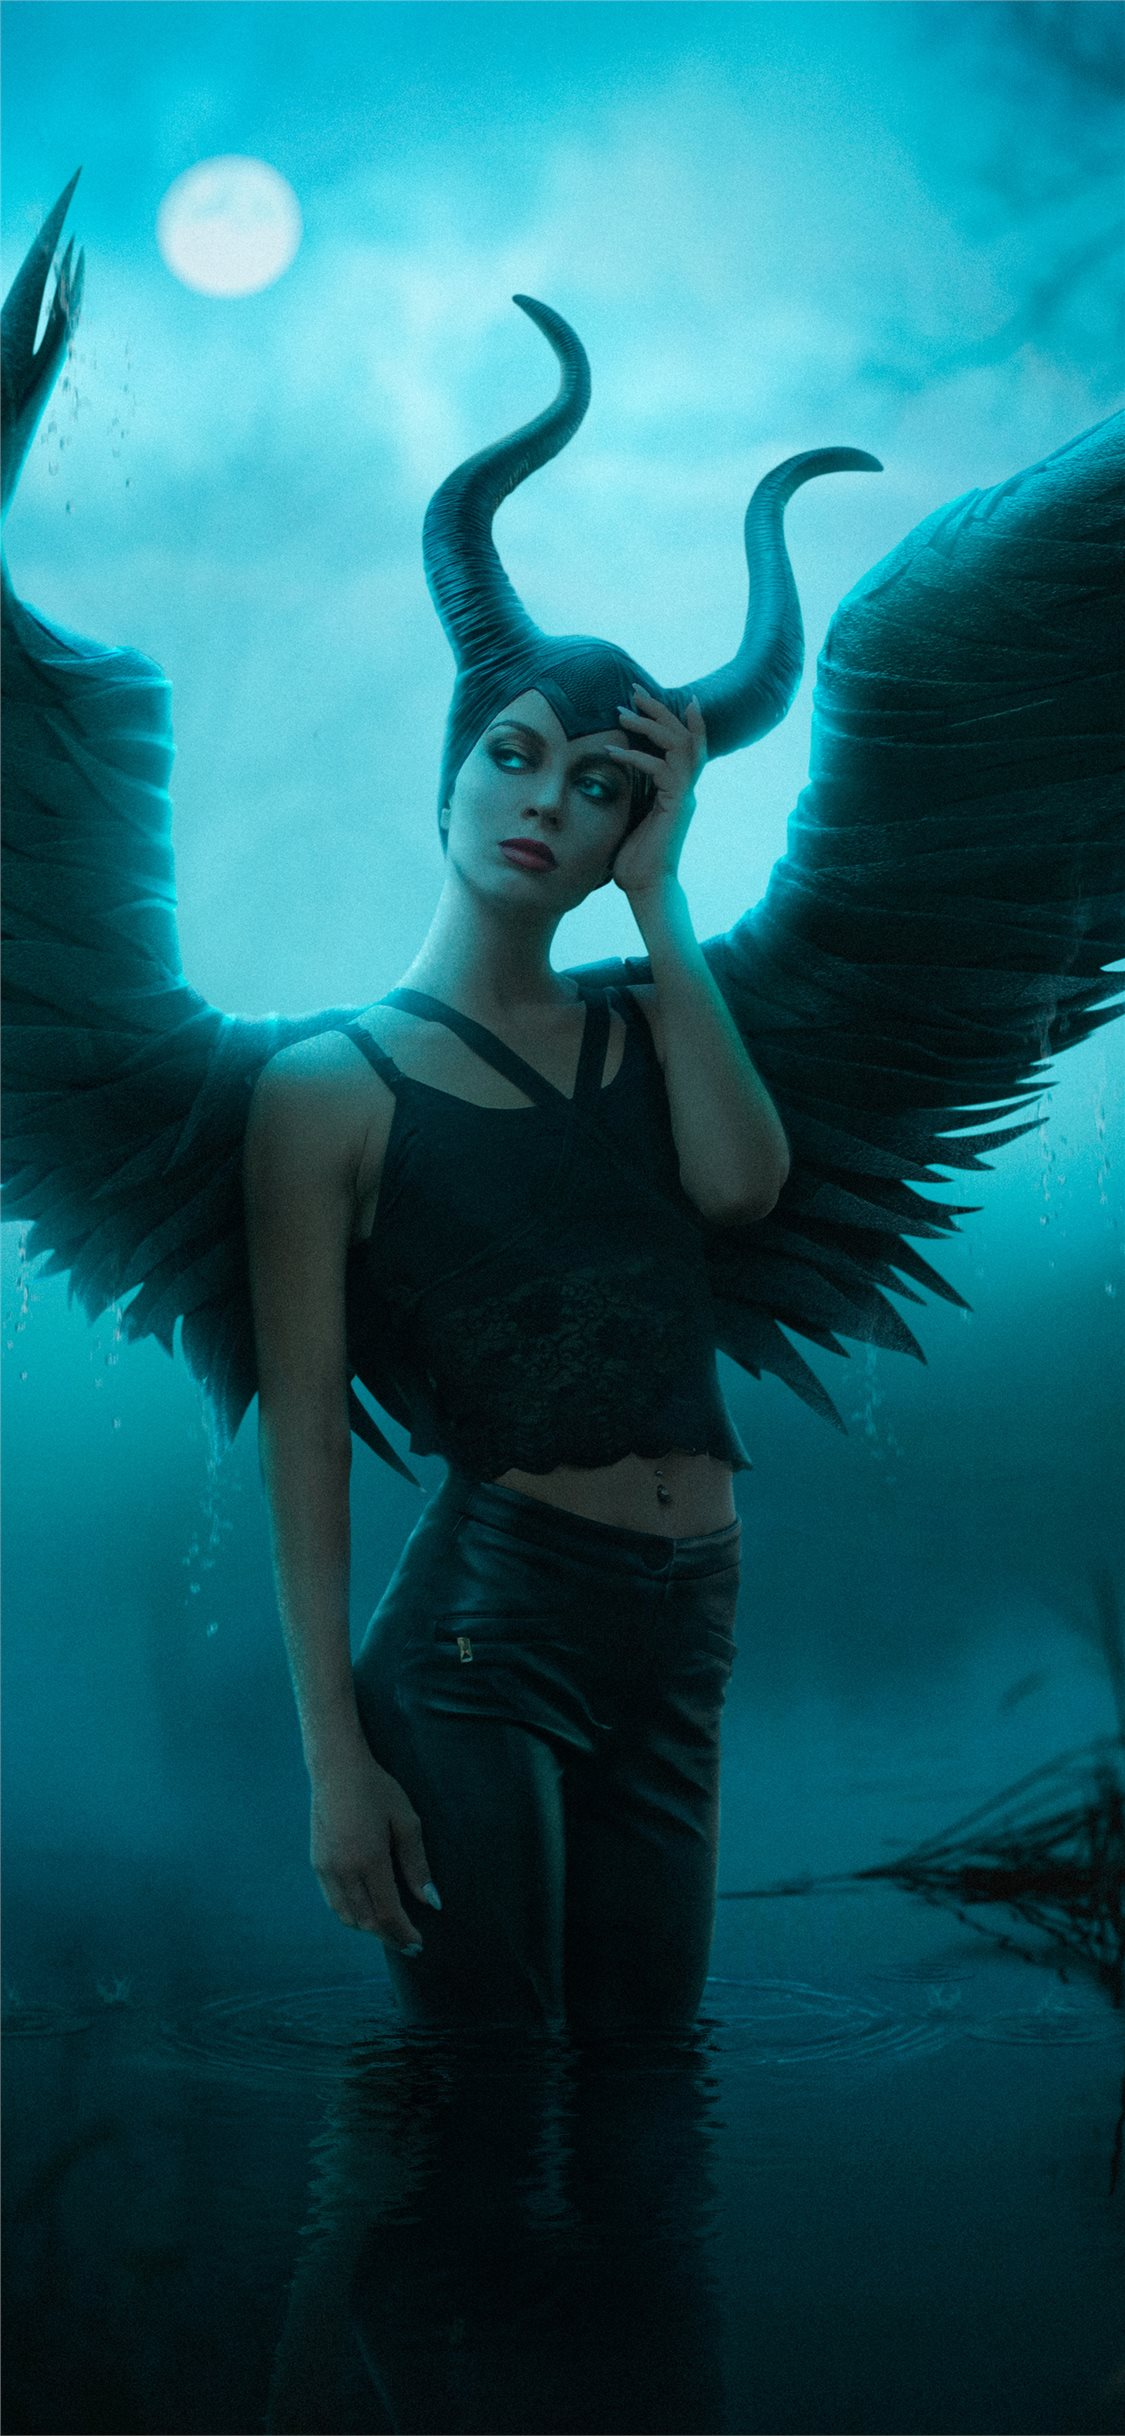 Maleficent Cosplay 4k Iphone Wallpapers Free Download